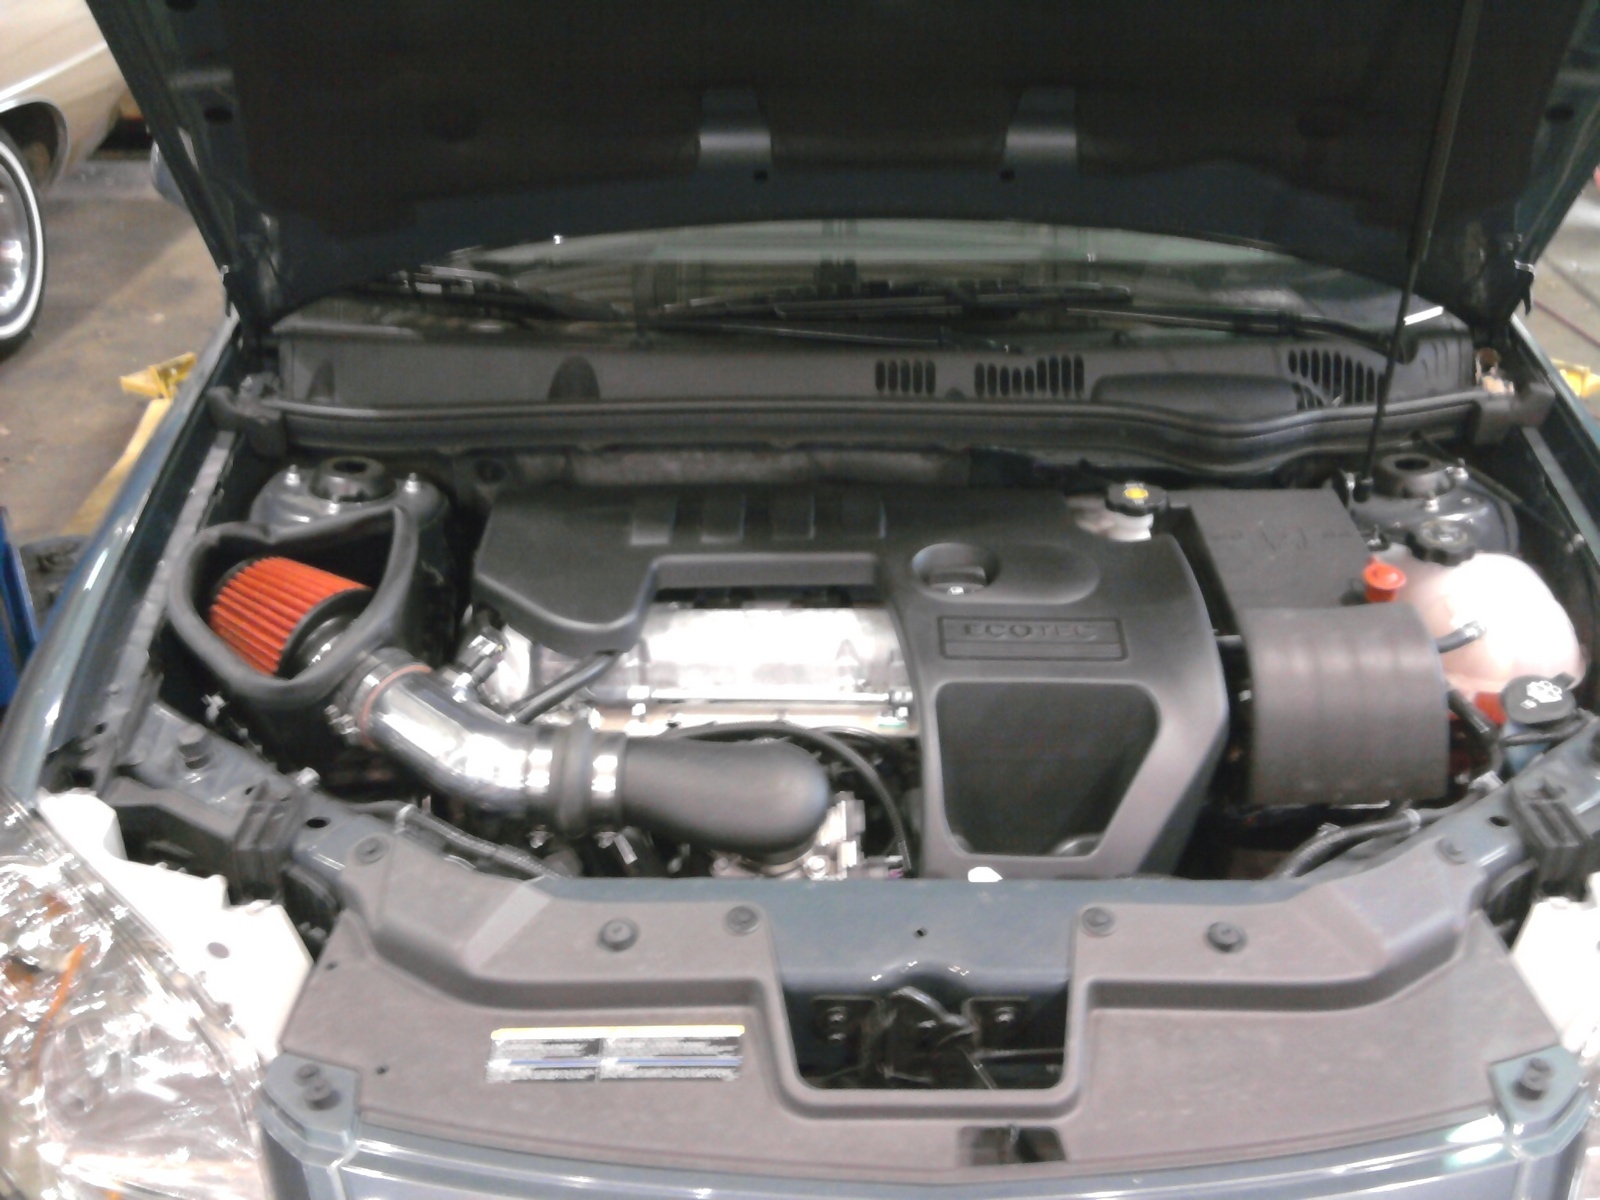 2009 Pontiac G5 Base picture, engine